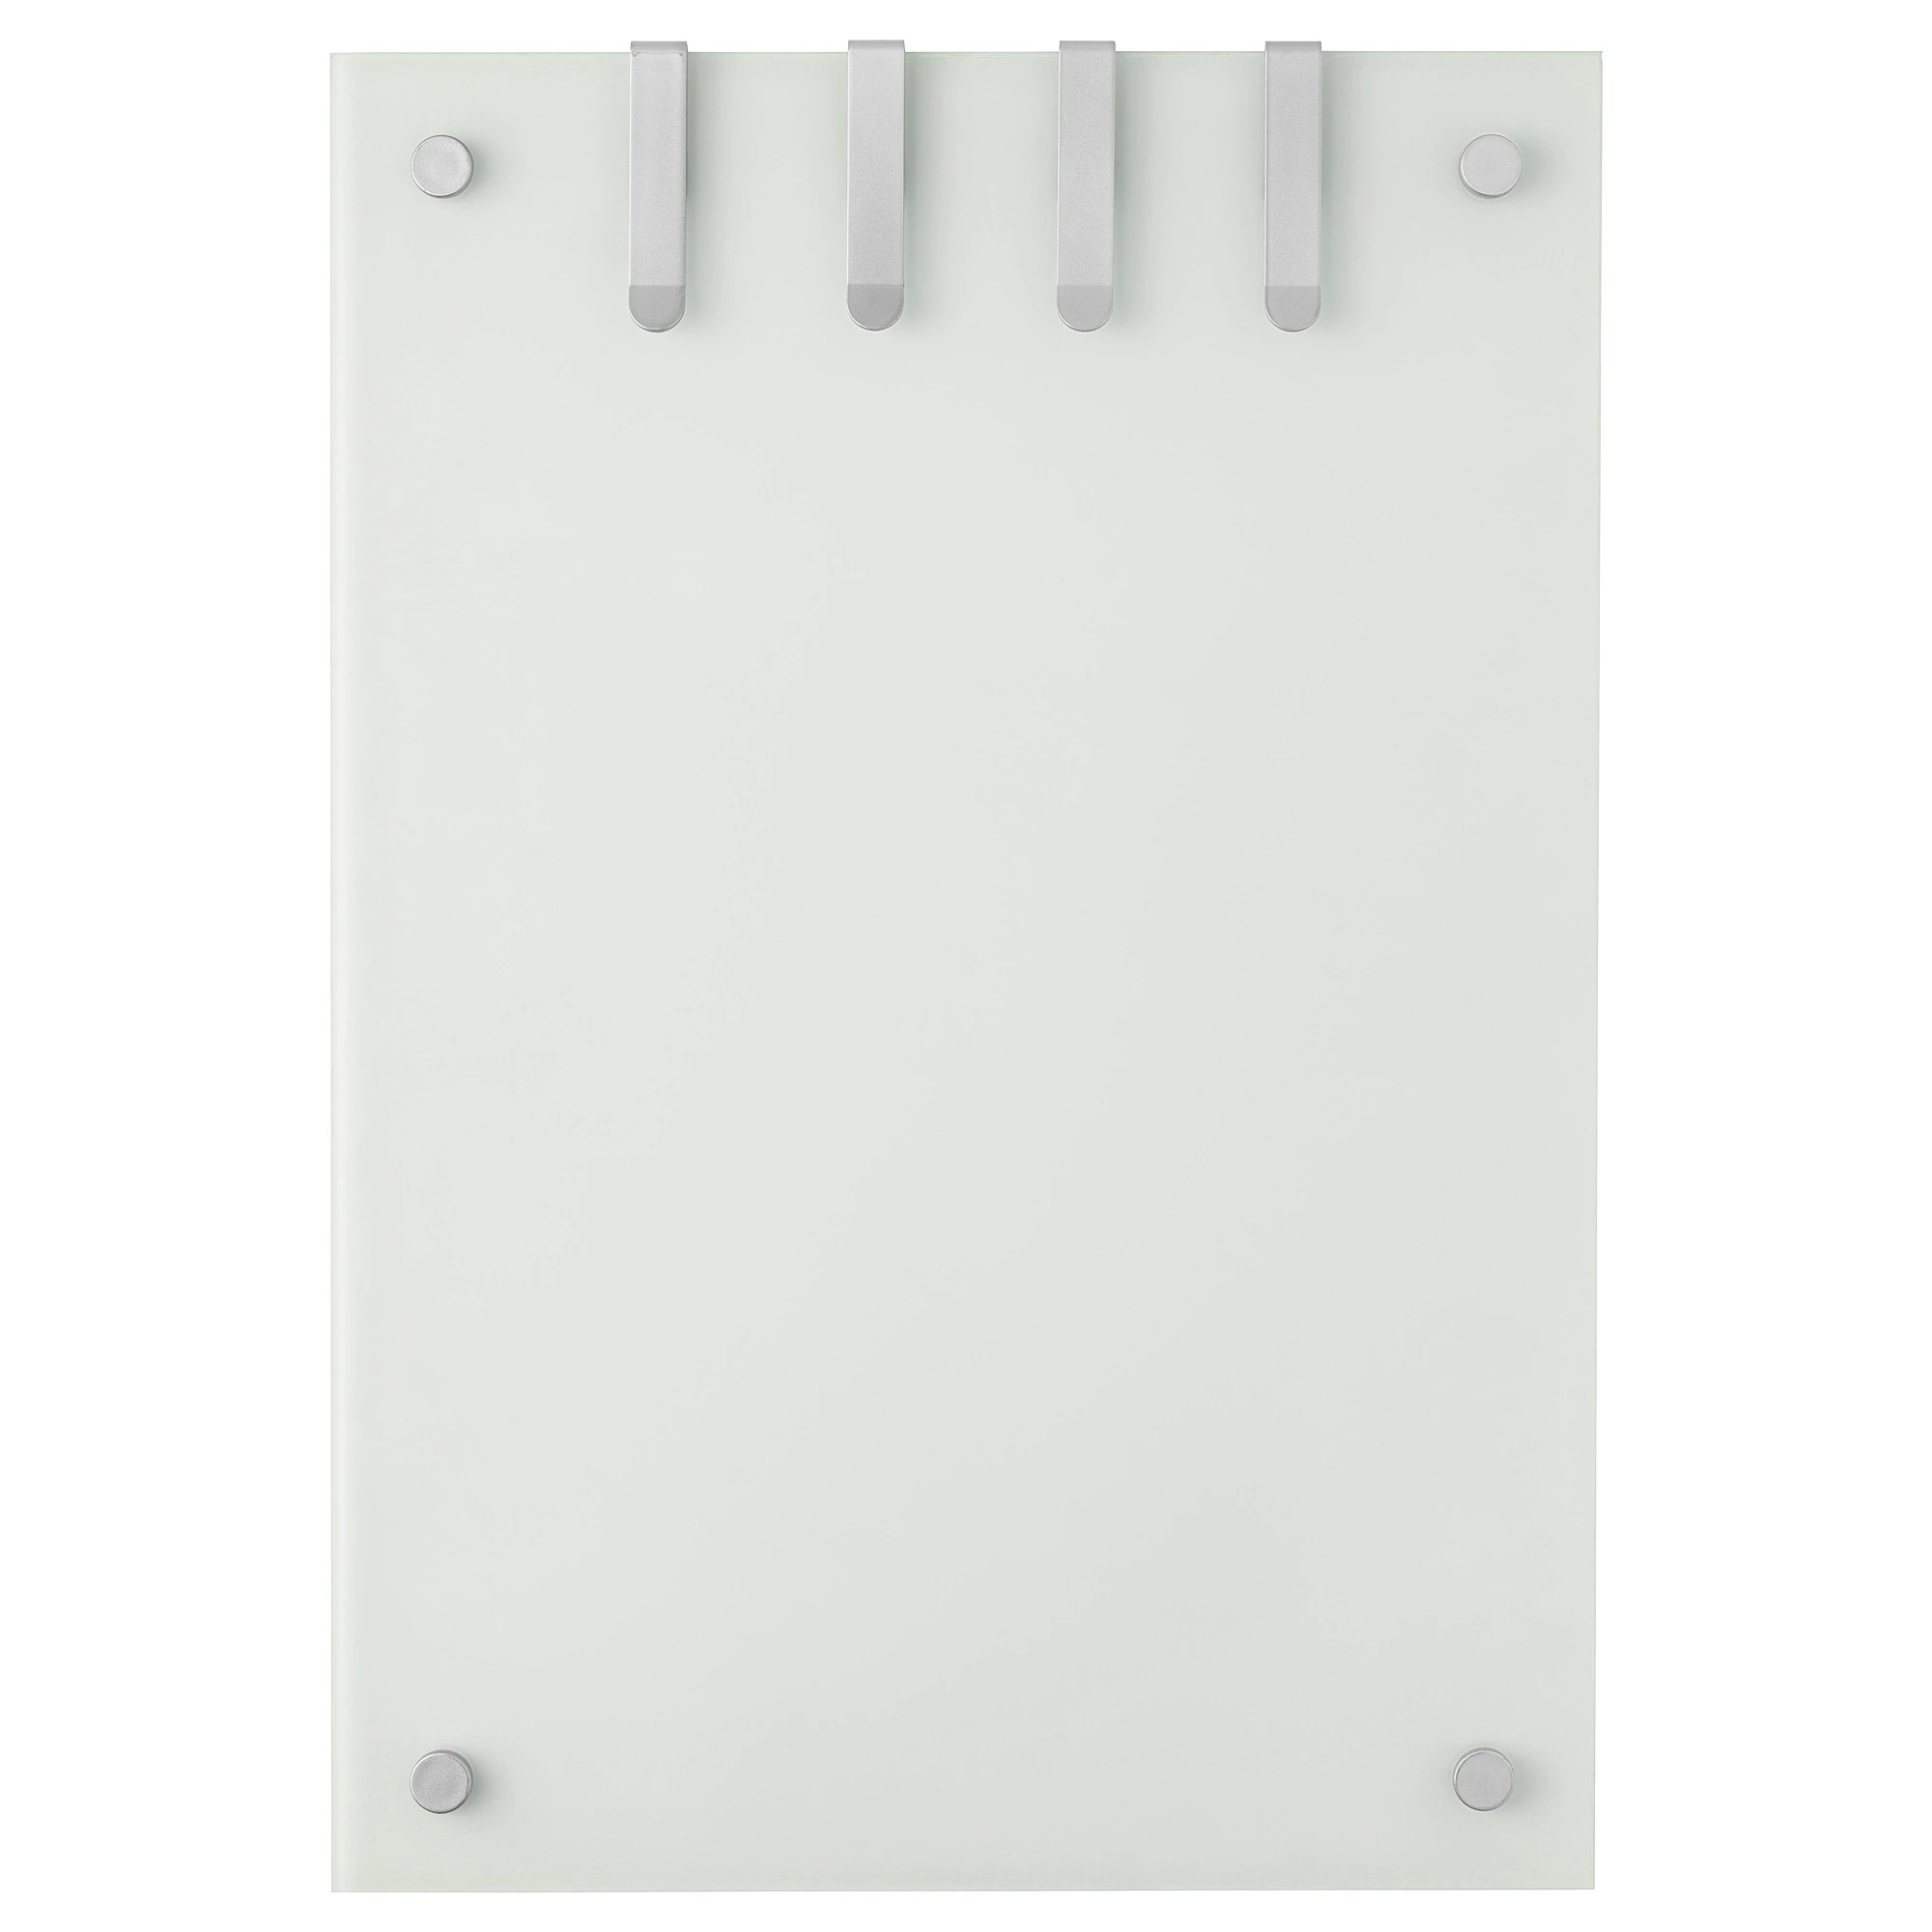 Ikea Burbank Directions Kludd Noticeboard Glass